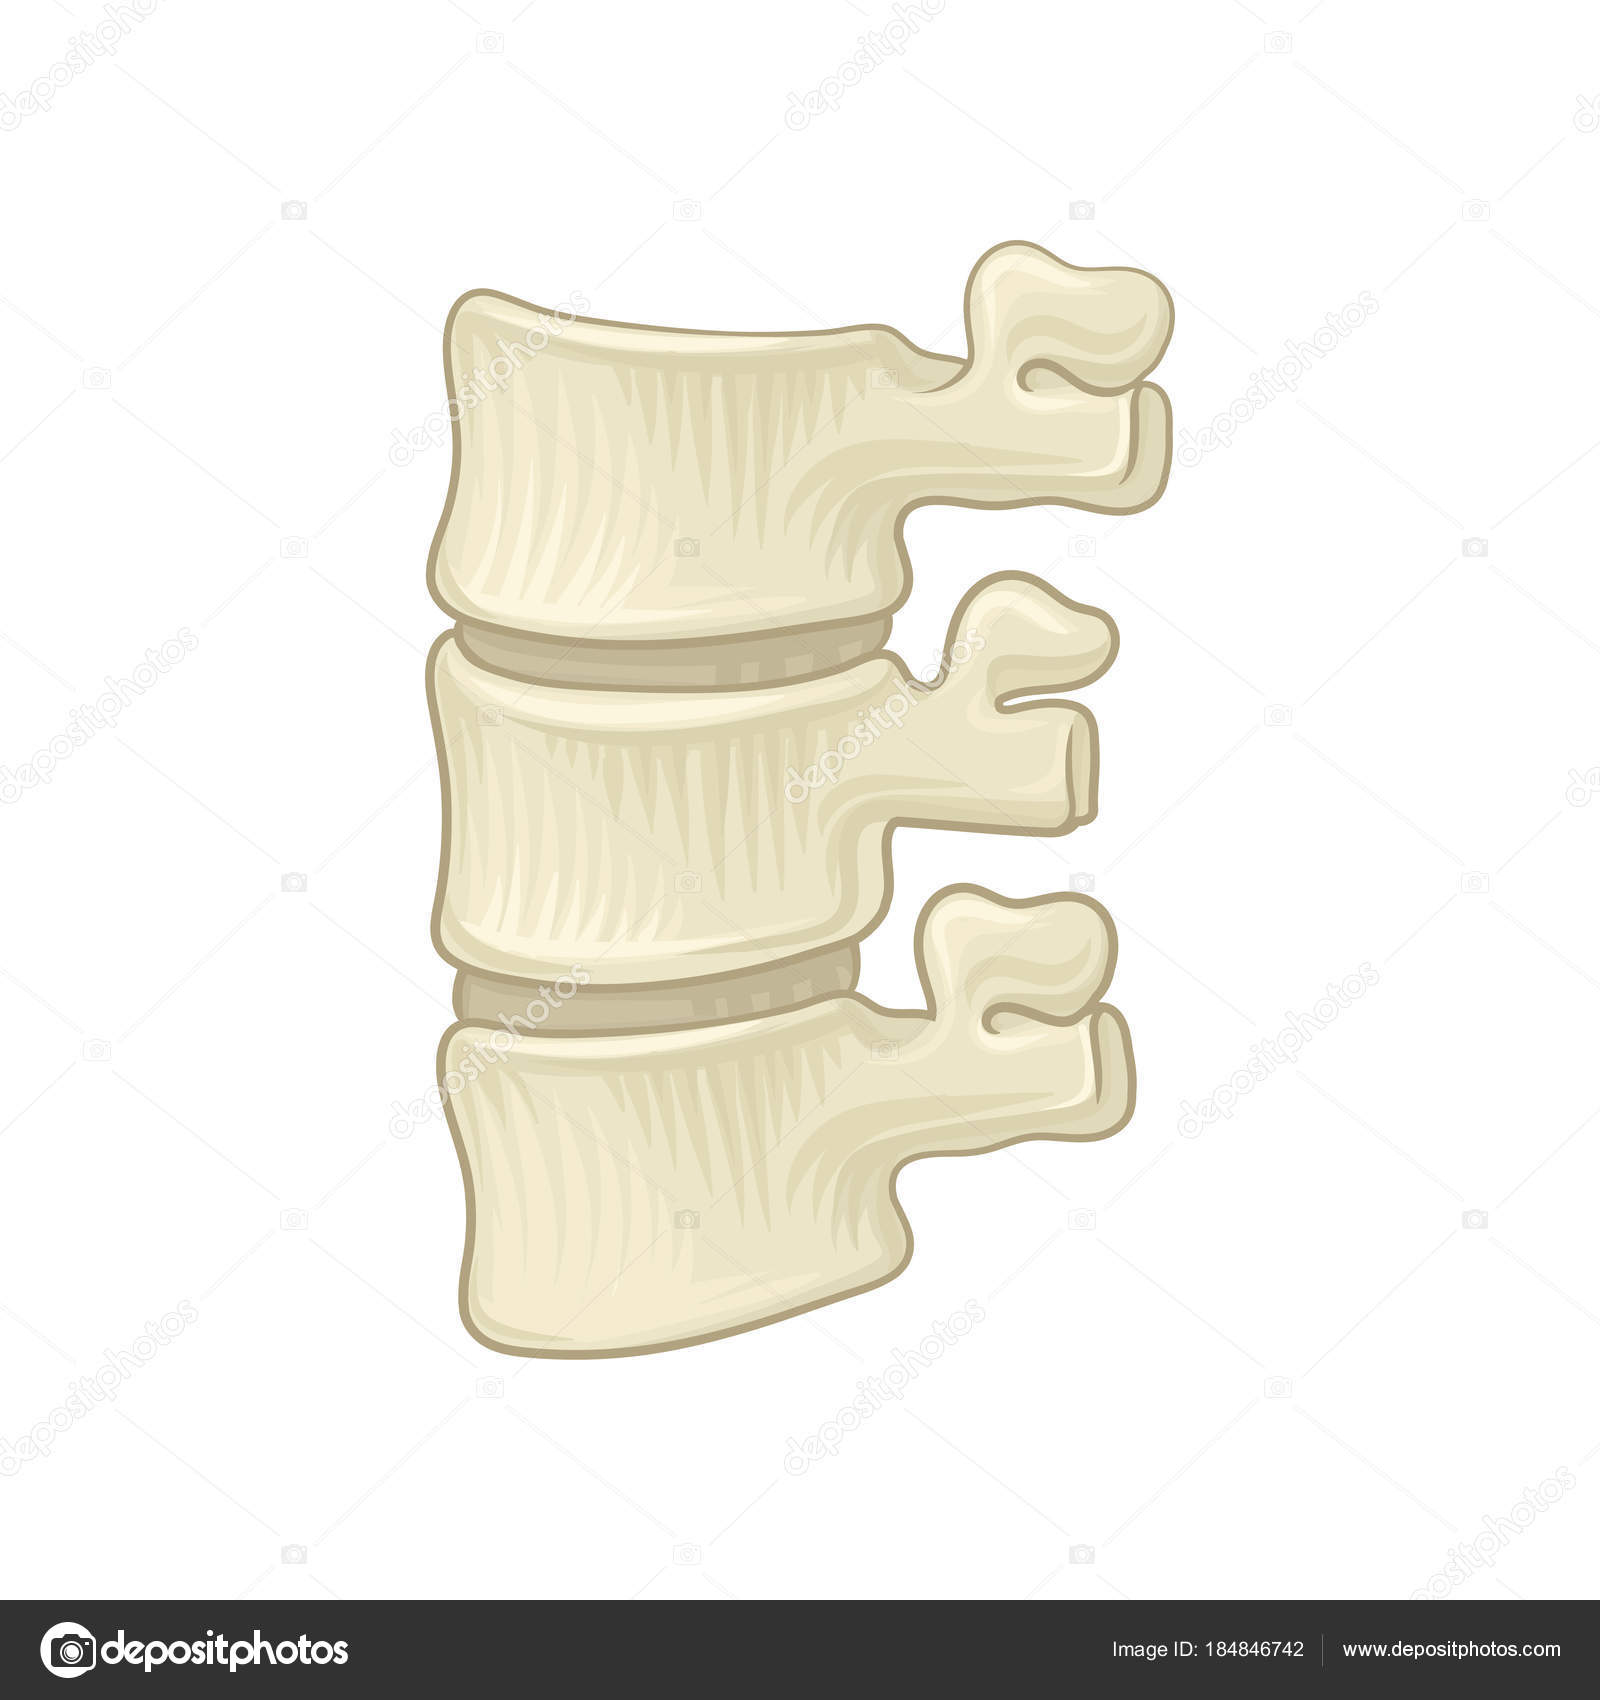 Anatomy Of Lumbar Spine Part Of Human Backbone Vertebral Bones And